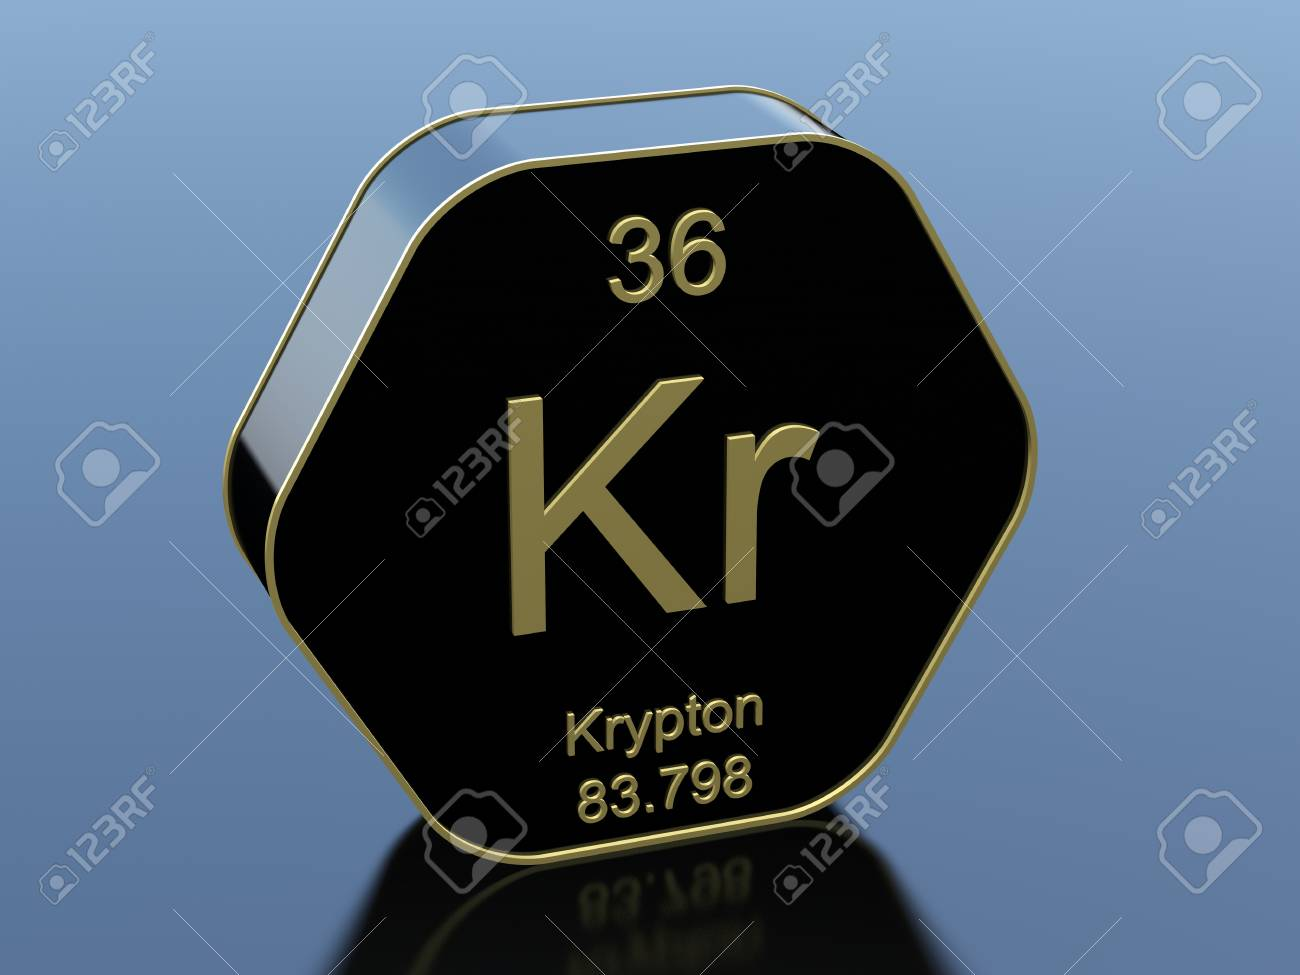 Krypton element symbol on hexagonal black icon stock photo krypton element symbol on hexagonal black icon stock photo 65586894 buycottarizona